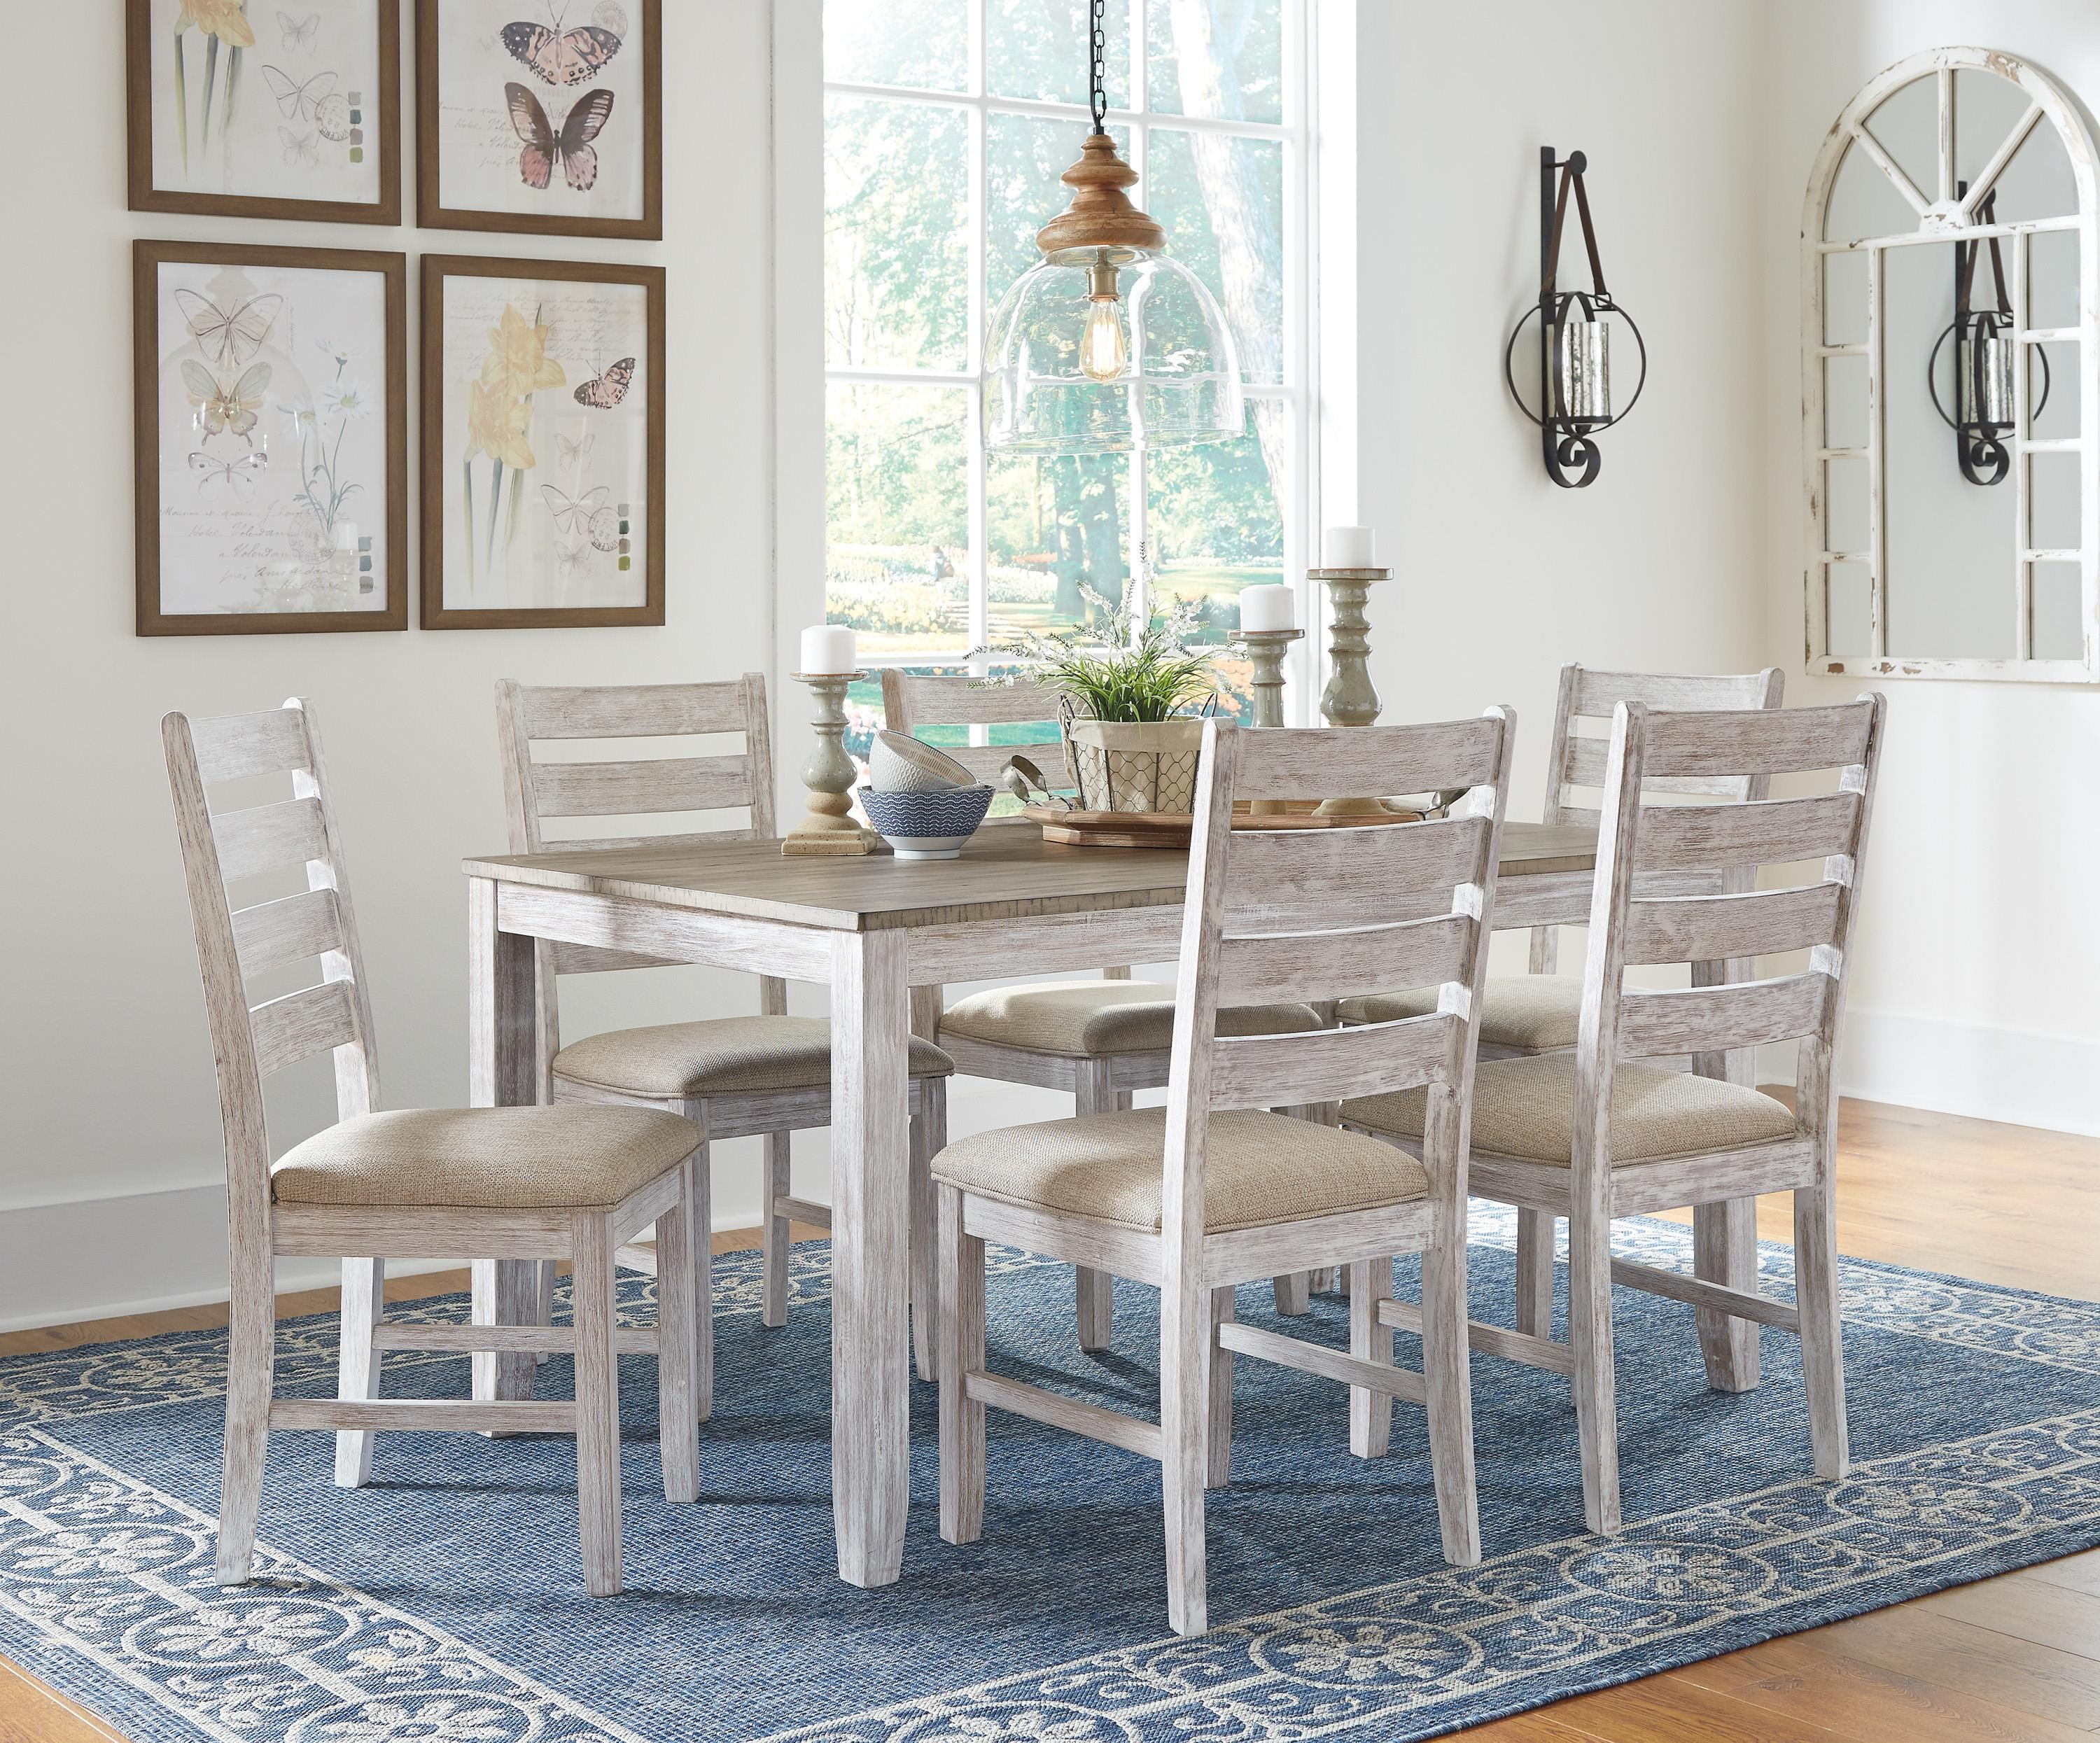 Skempton Skempton 7-Piece Dining Table Set by Ashley at Morris Home